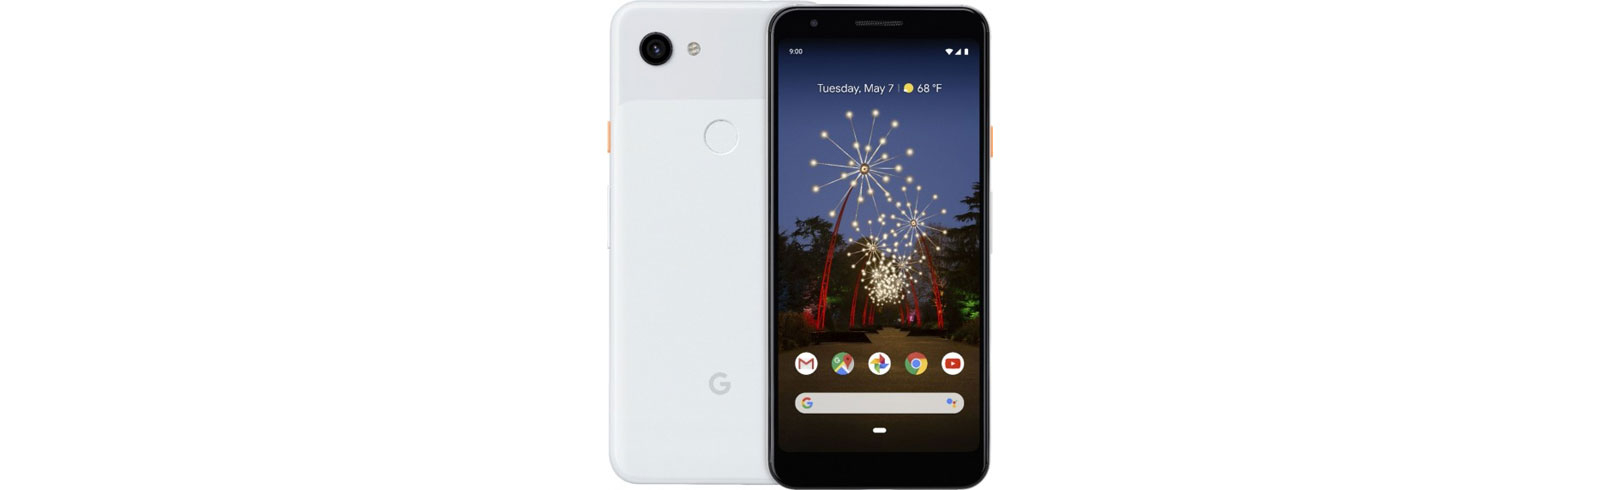 Google Pixel 3a and Pixel 3a XL are official